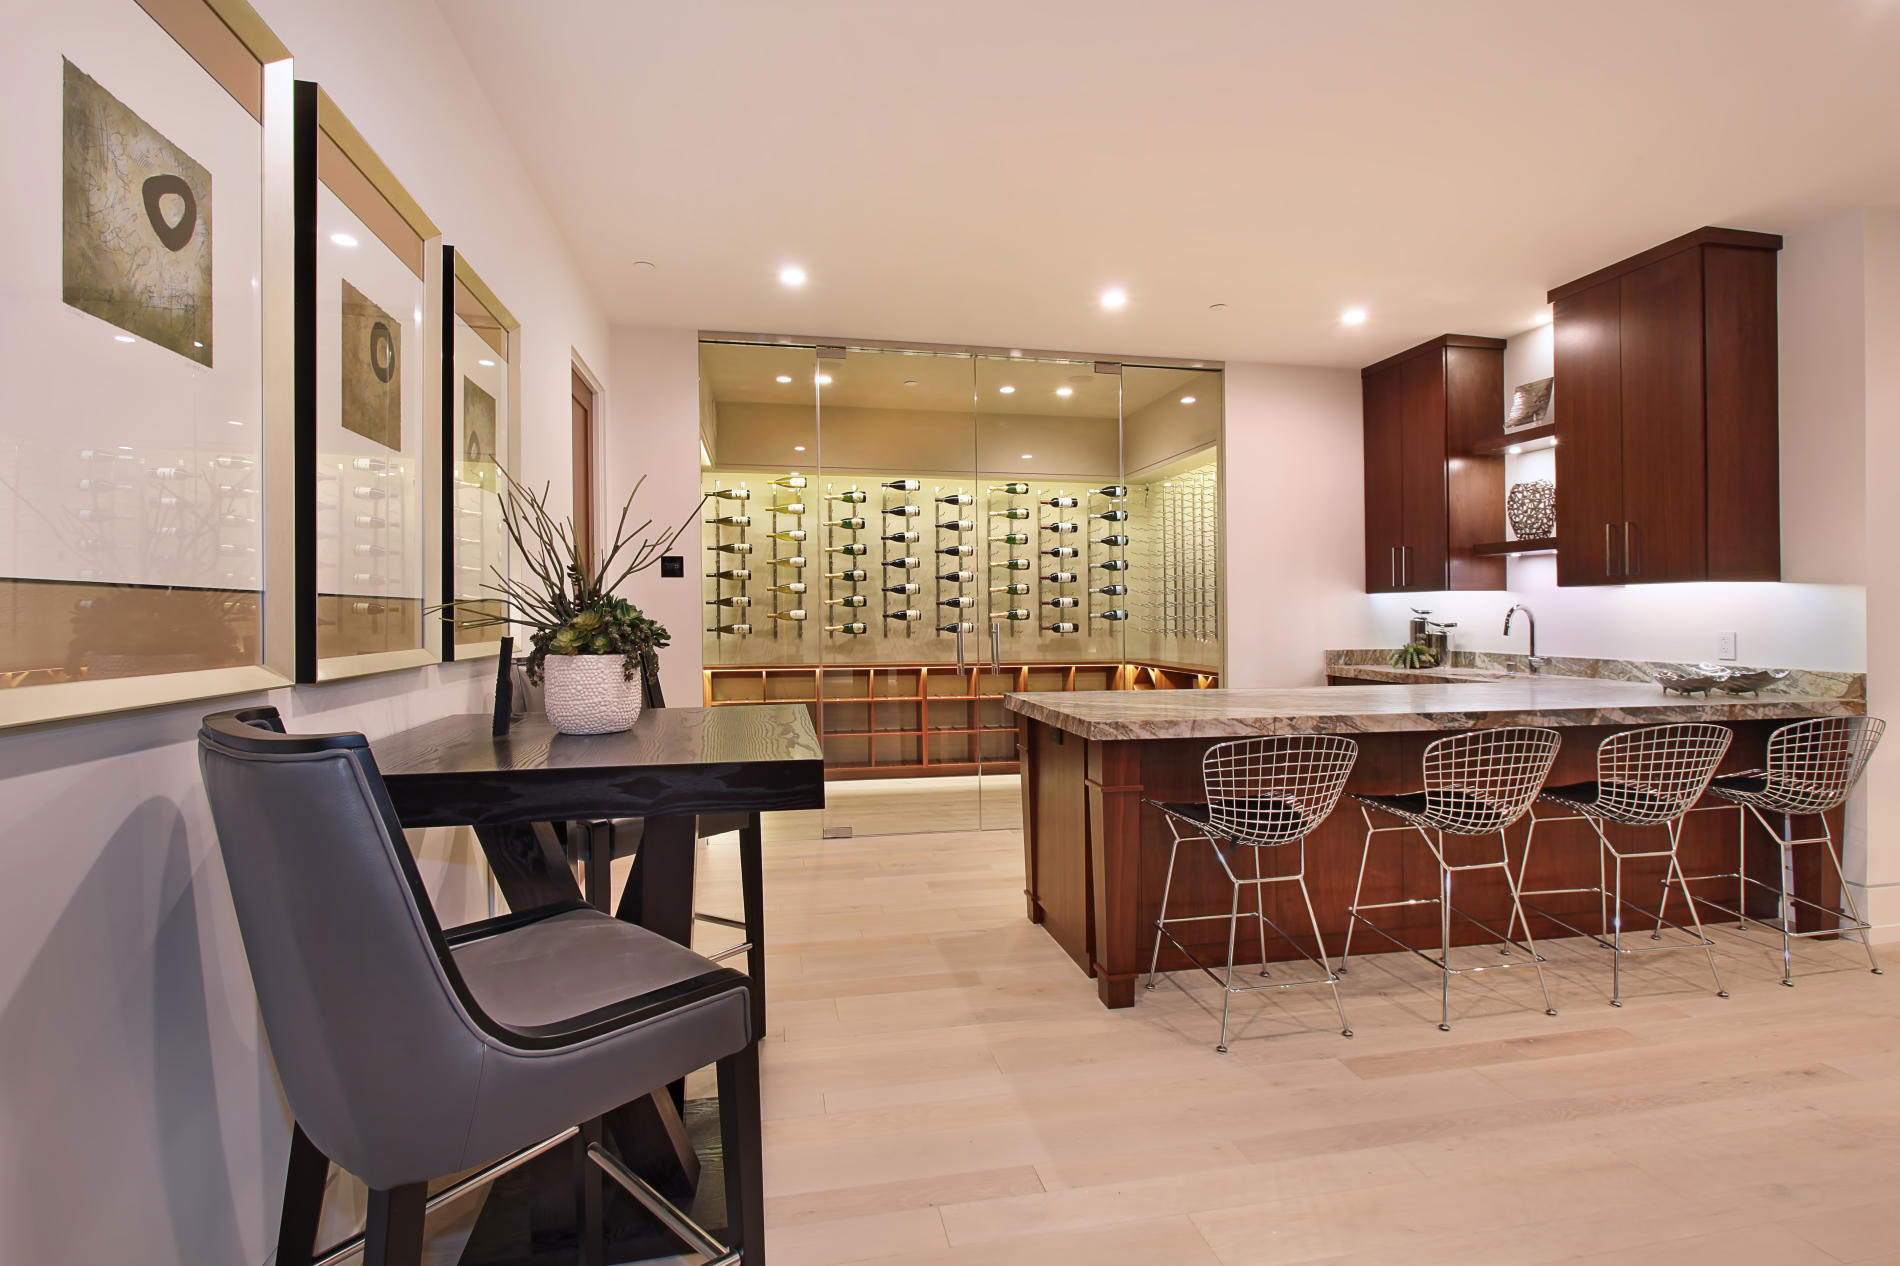 Wine Room, Kitchen Tables, Home in Corona del Mar, California